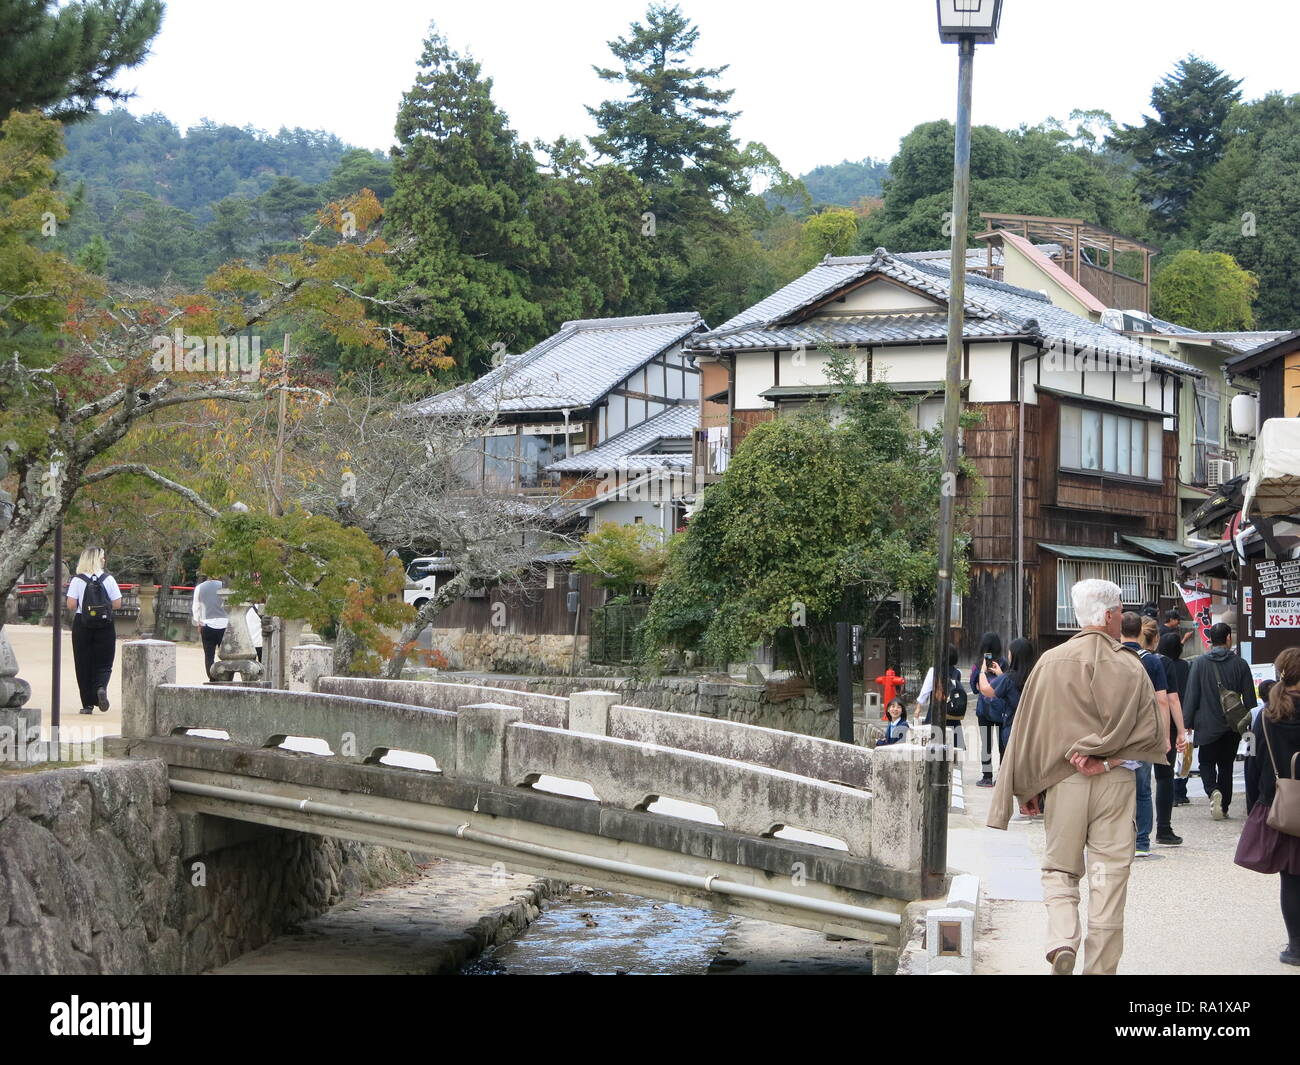 Street scene, Miyajima Island, Japan; the quaint streets are thronged with tourists - Stock Image